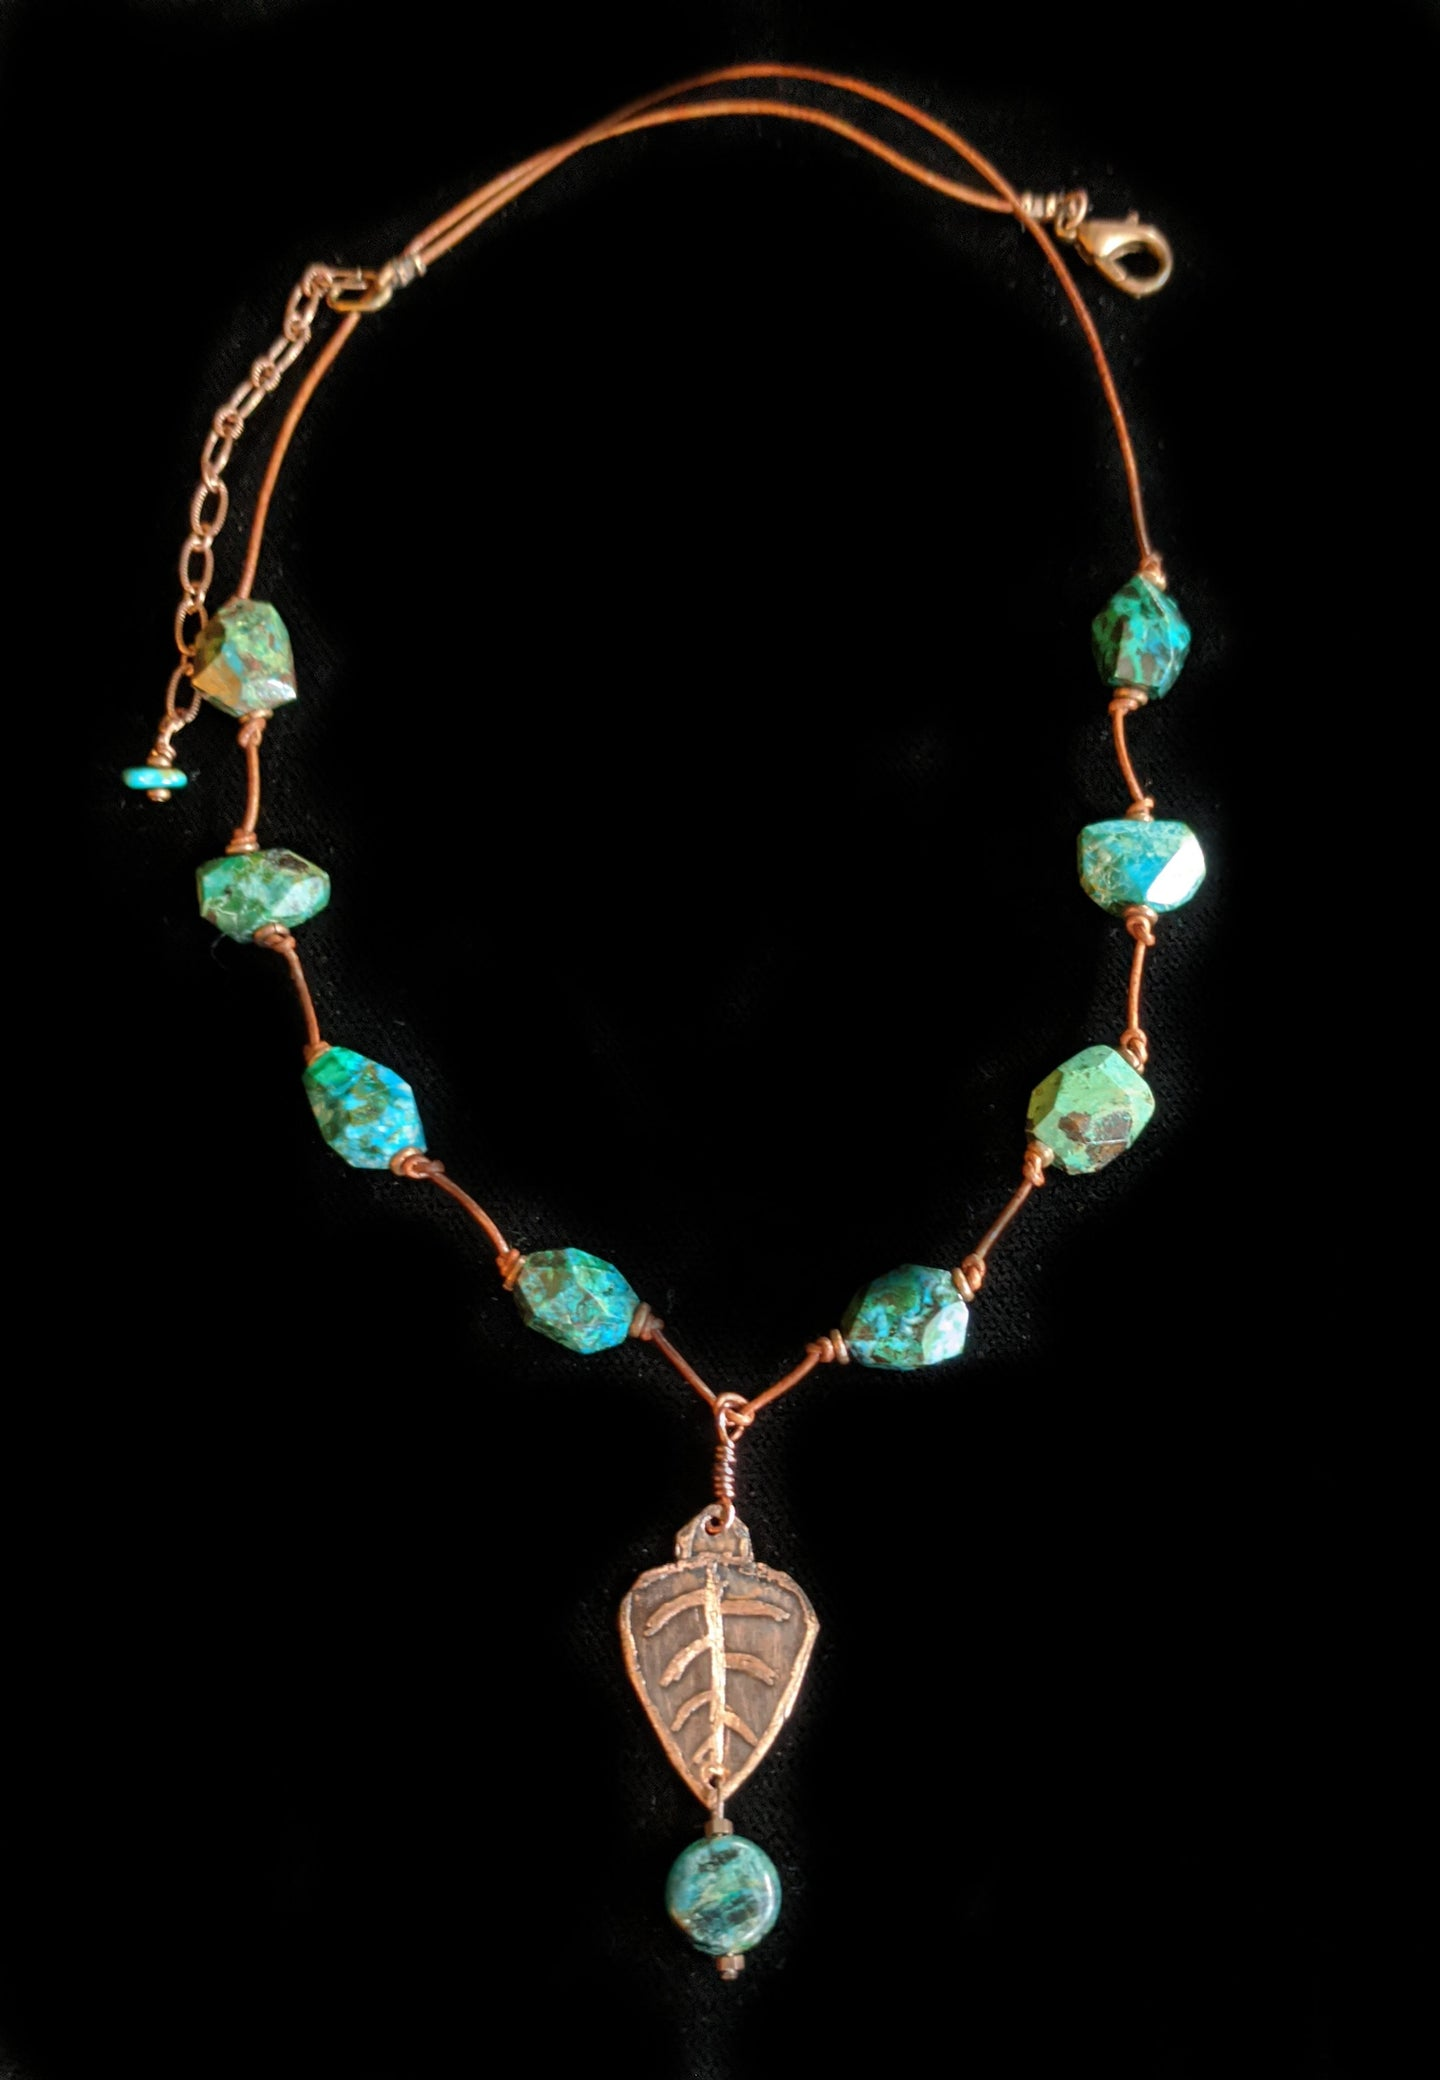 copper leaf & chrysocolla necklace - sunroot studio